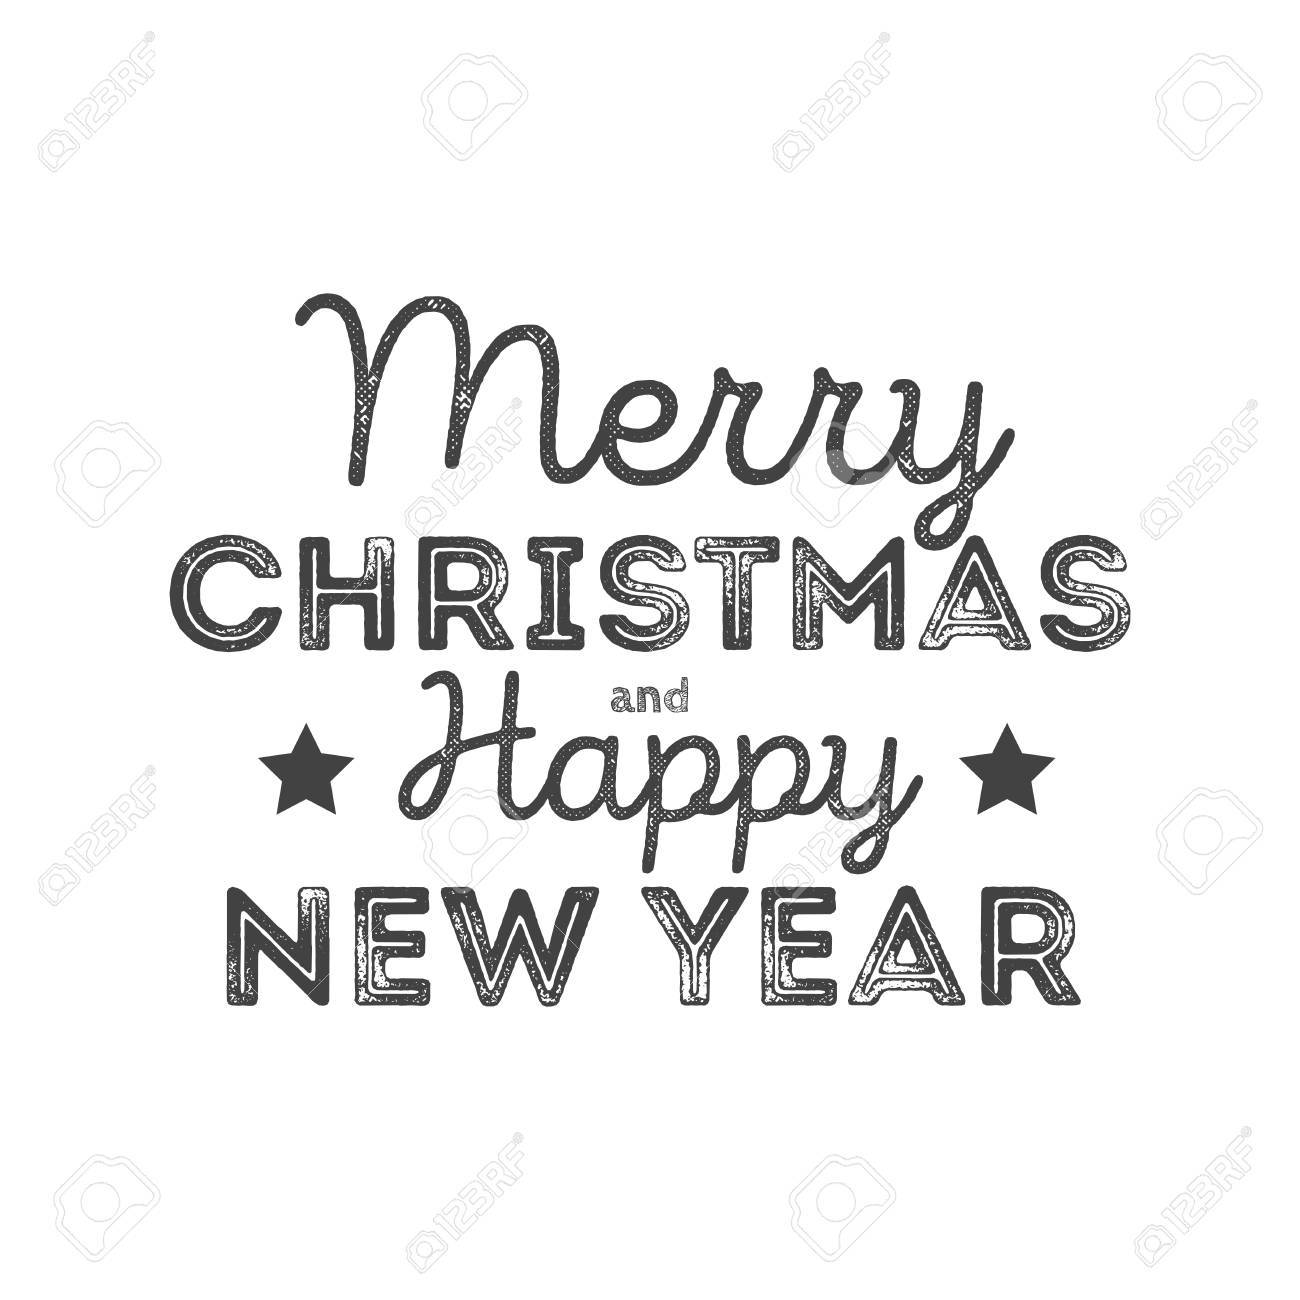 merry christmas and happy new year lettering holiday calligraphy royalty free cliparts vectors and stock illustration image 67946809 merry christmas and happy new year lettering holiday calligraphy